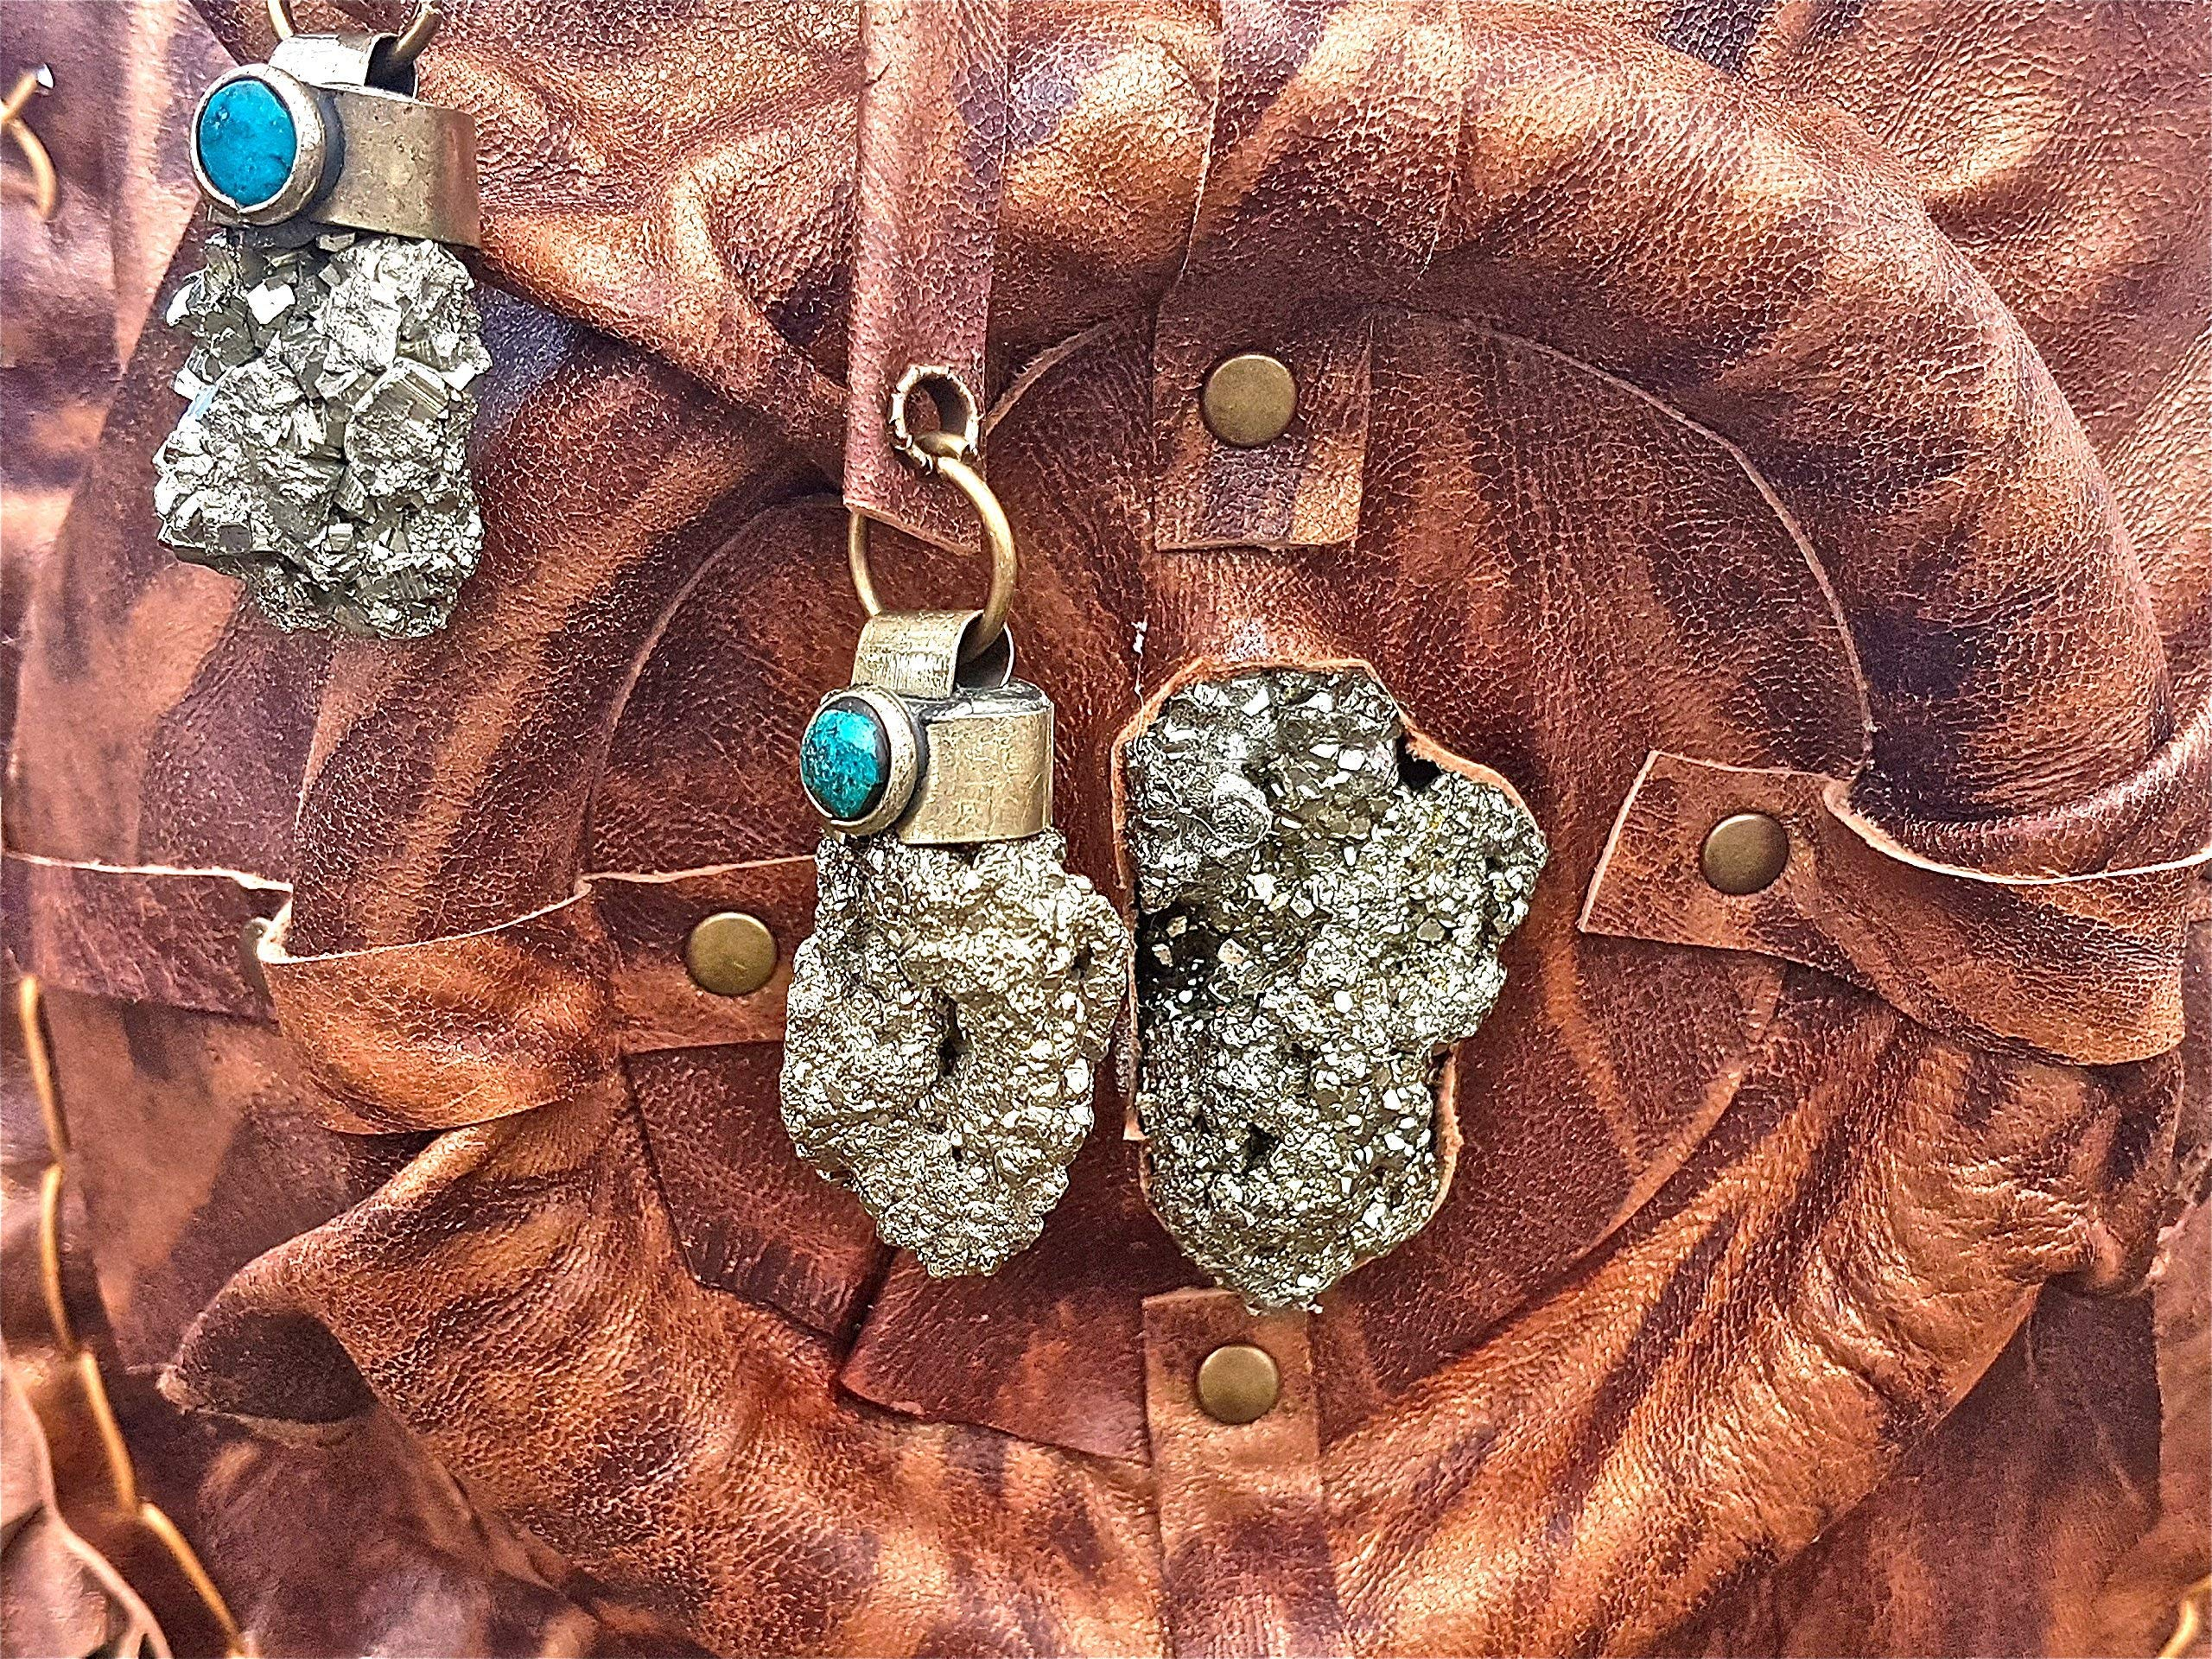 Brown leather bag with fringes and some pyrite stones. Bohemian, hippie, ethnic,boho. - handmade-bags